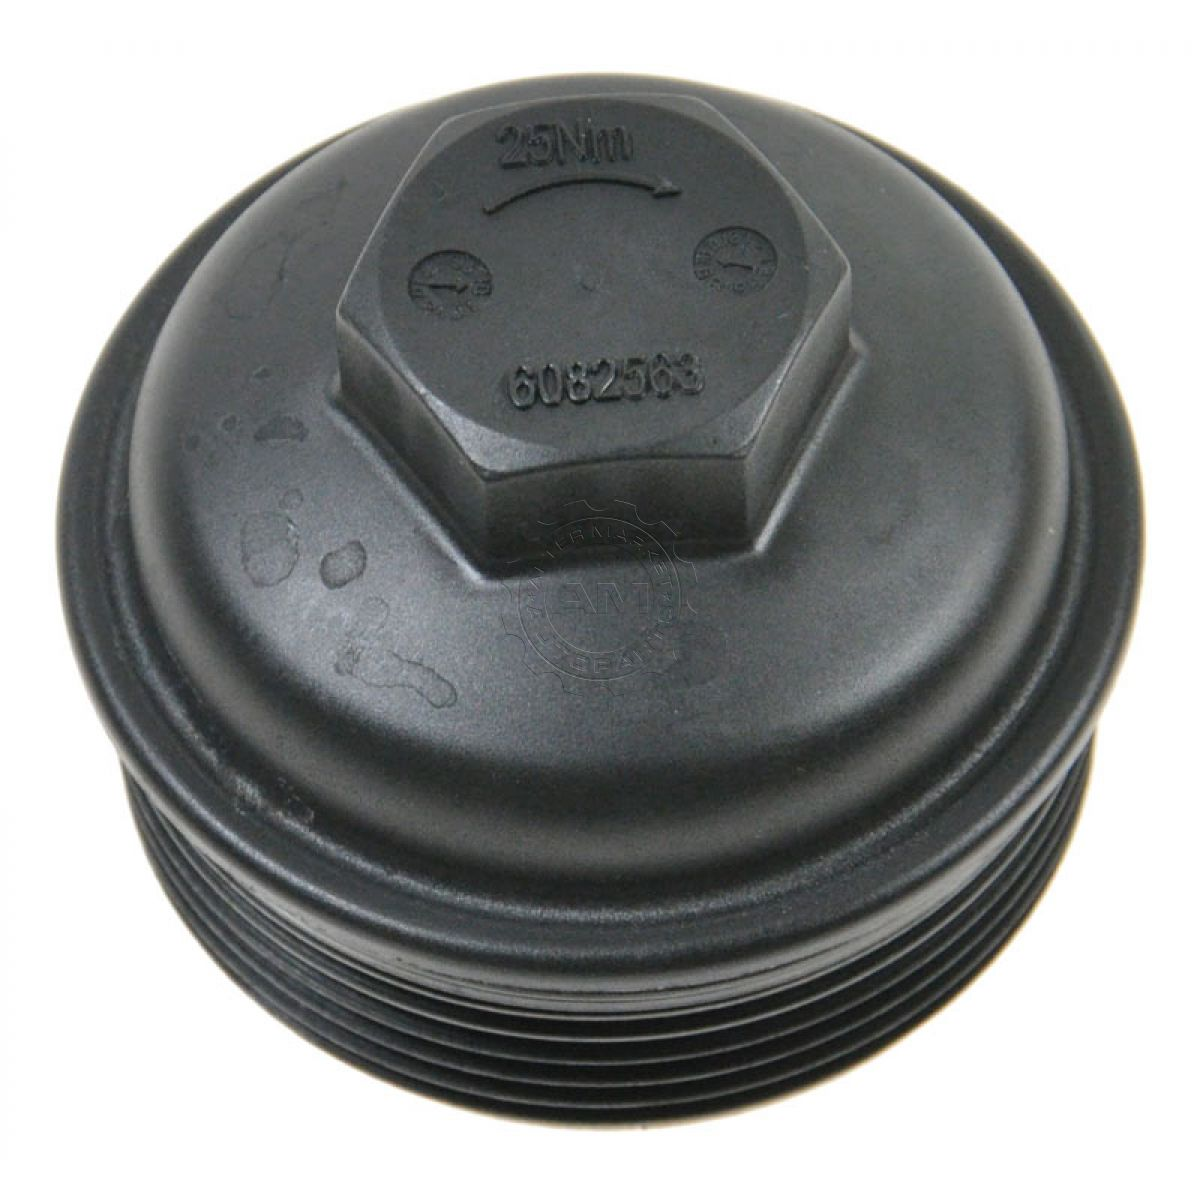 Dorman Oil Filter Housing Cap Cover For Cobalt Vue Grand